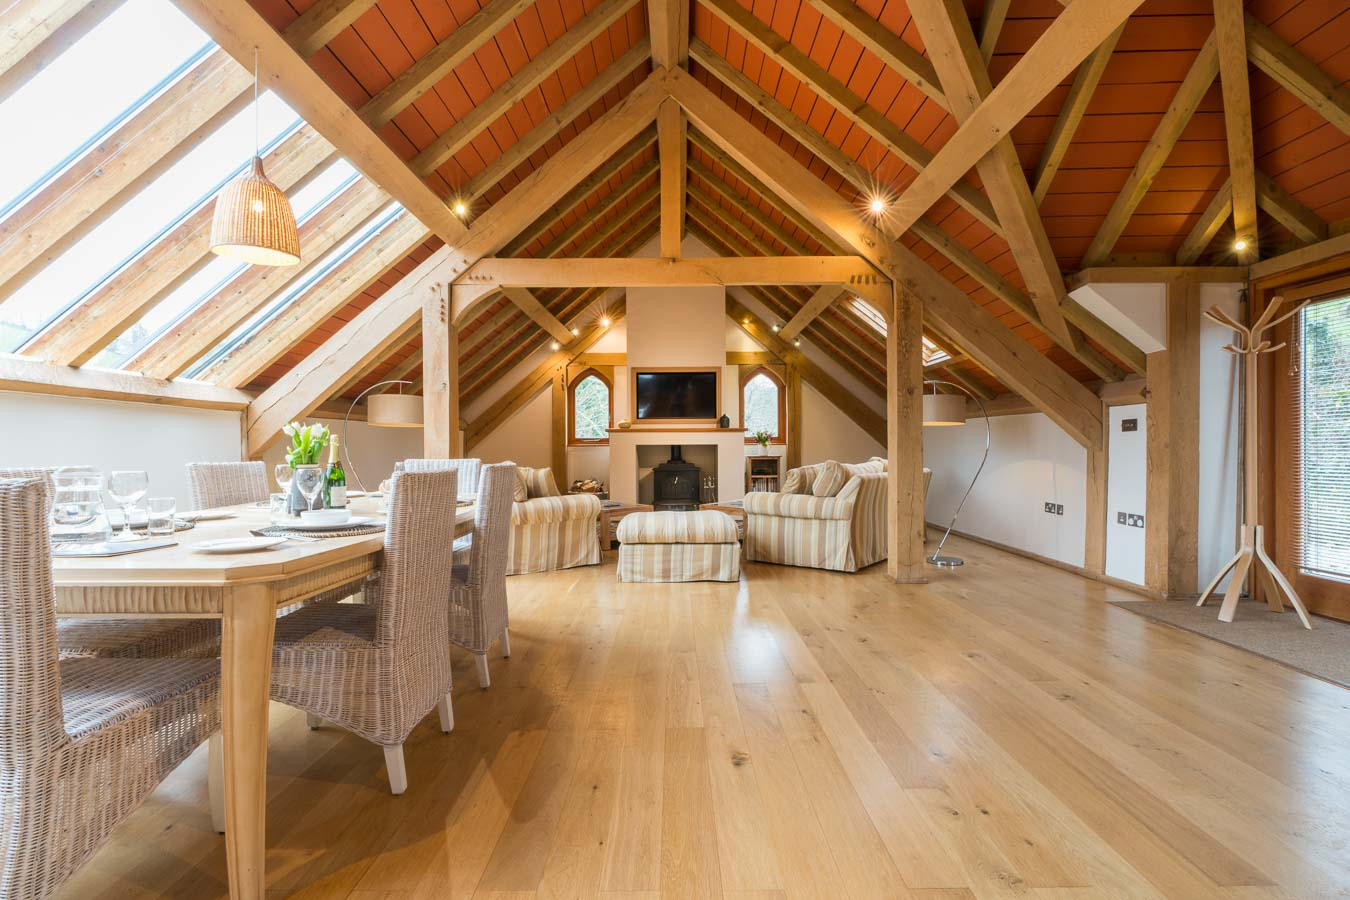 Light and expansive Orchard Lodge has all the comforts to make you feel at home while enjoying all the luxury Flear Farm has to offer, for all the family.